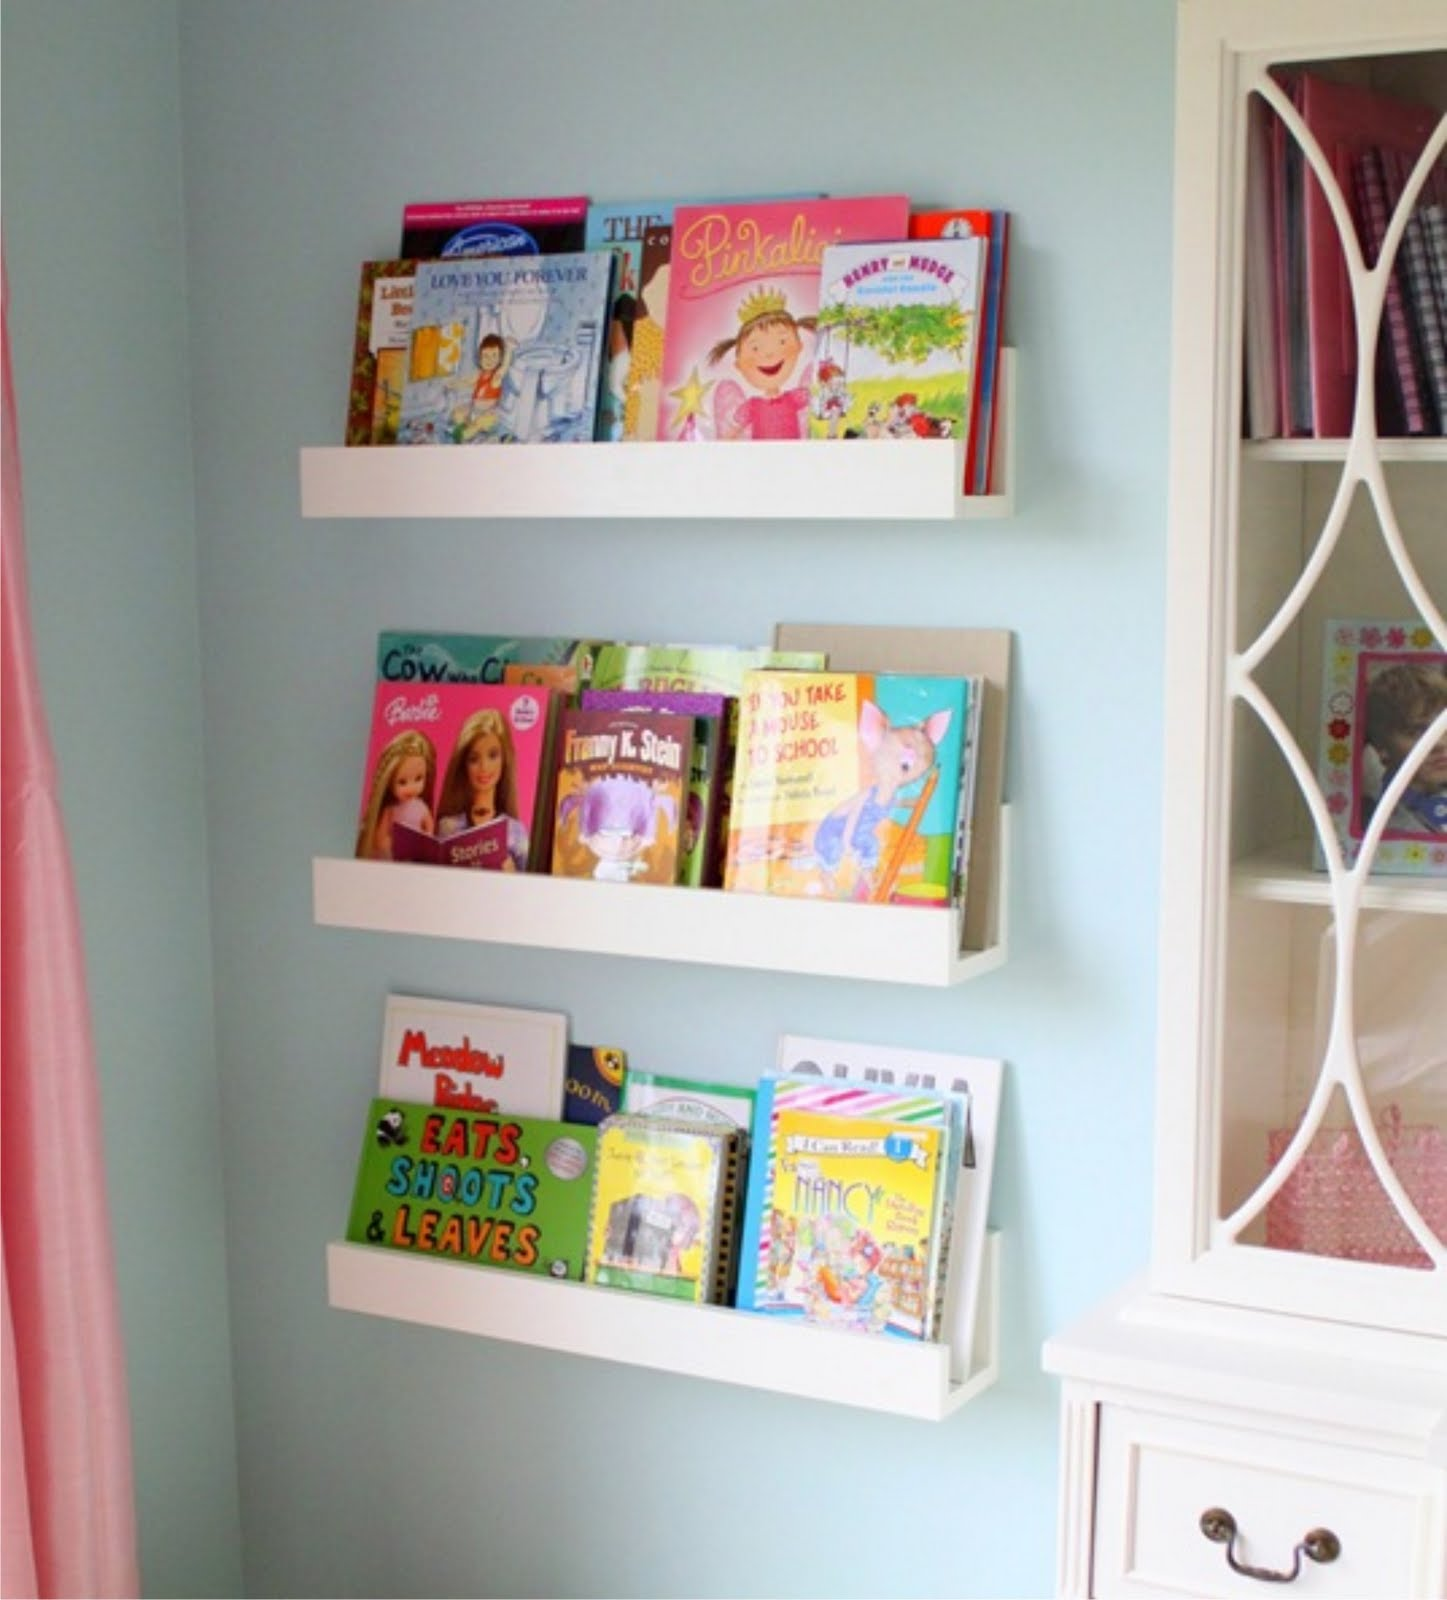 Winks daisies diy wall shelves for Easy diy shelves